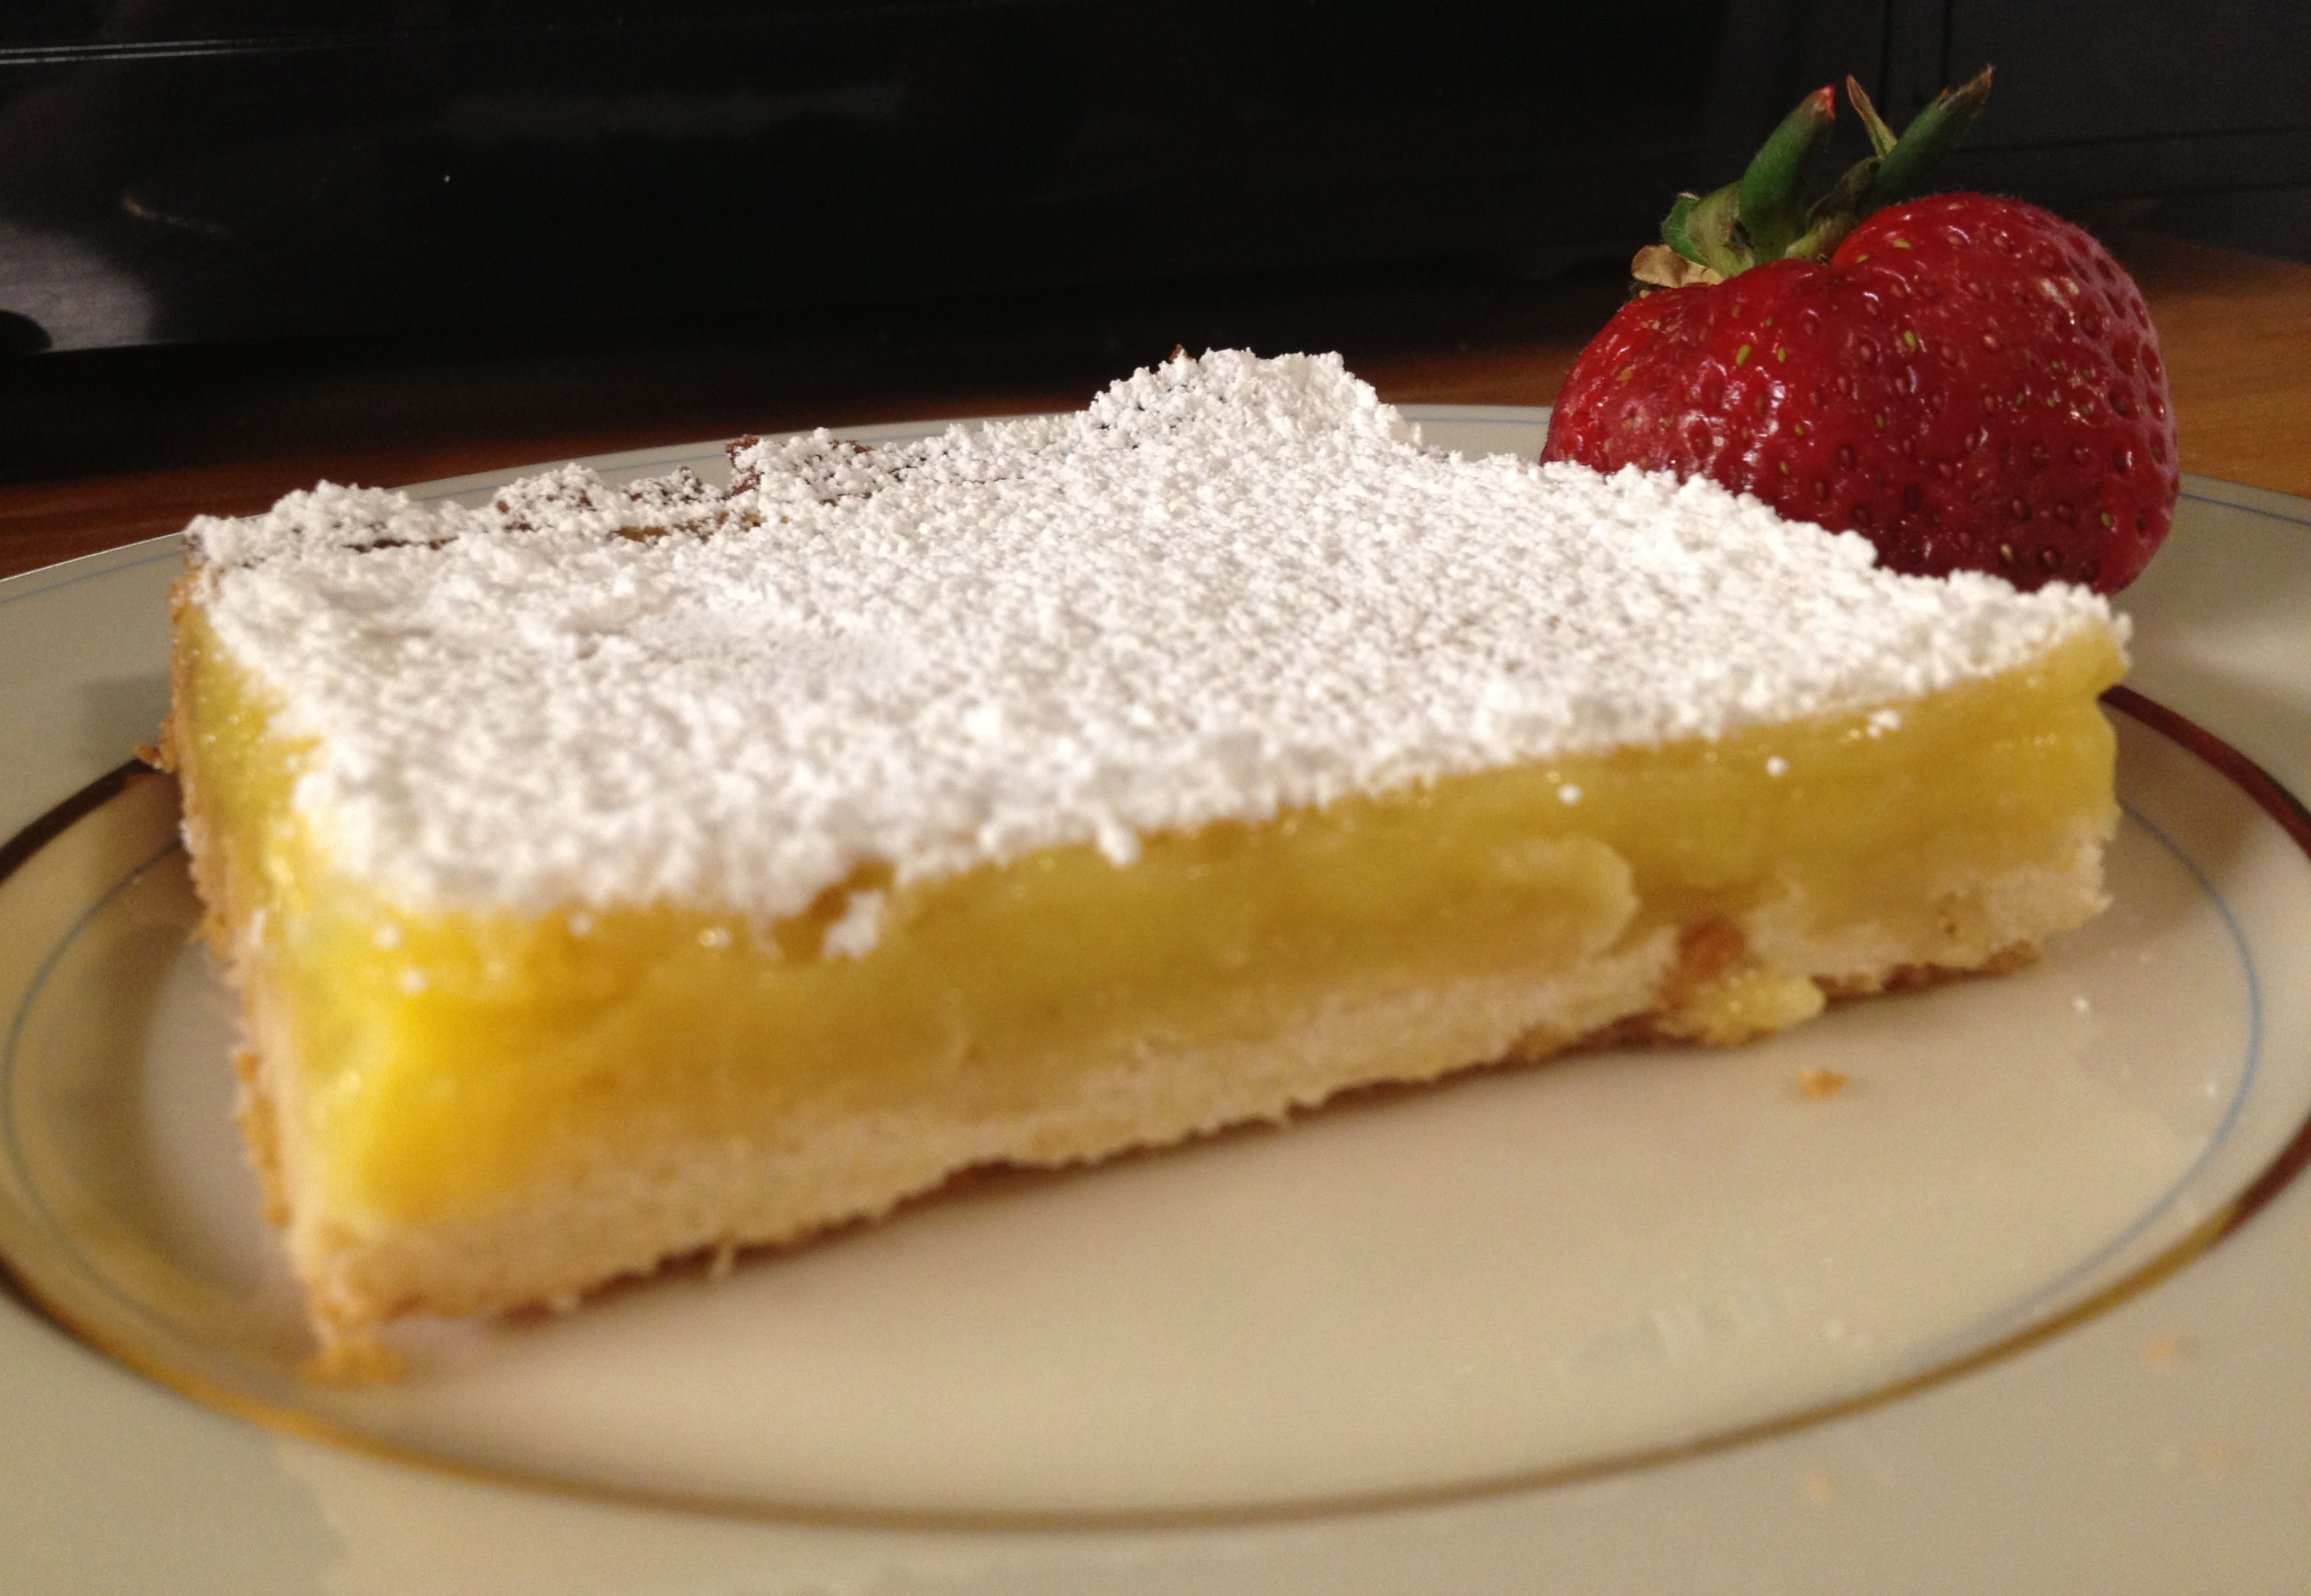 Lemon bars on a off white china plate with a fresh strawberry.